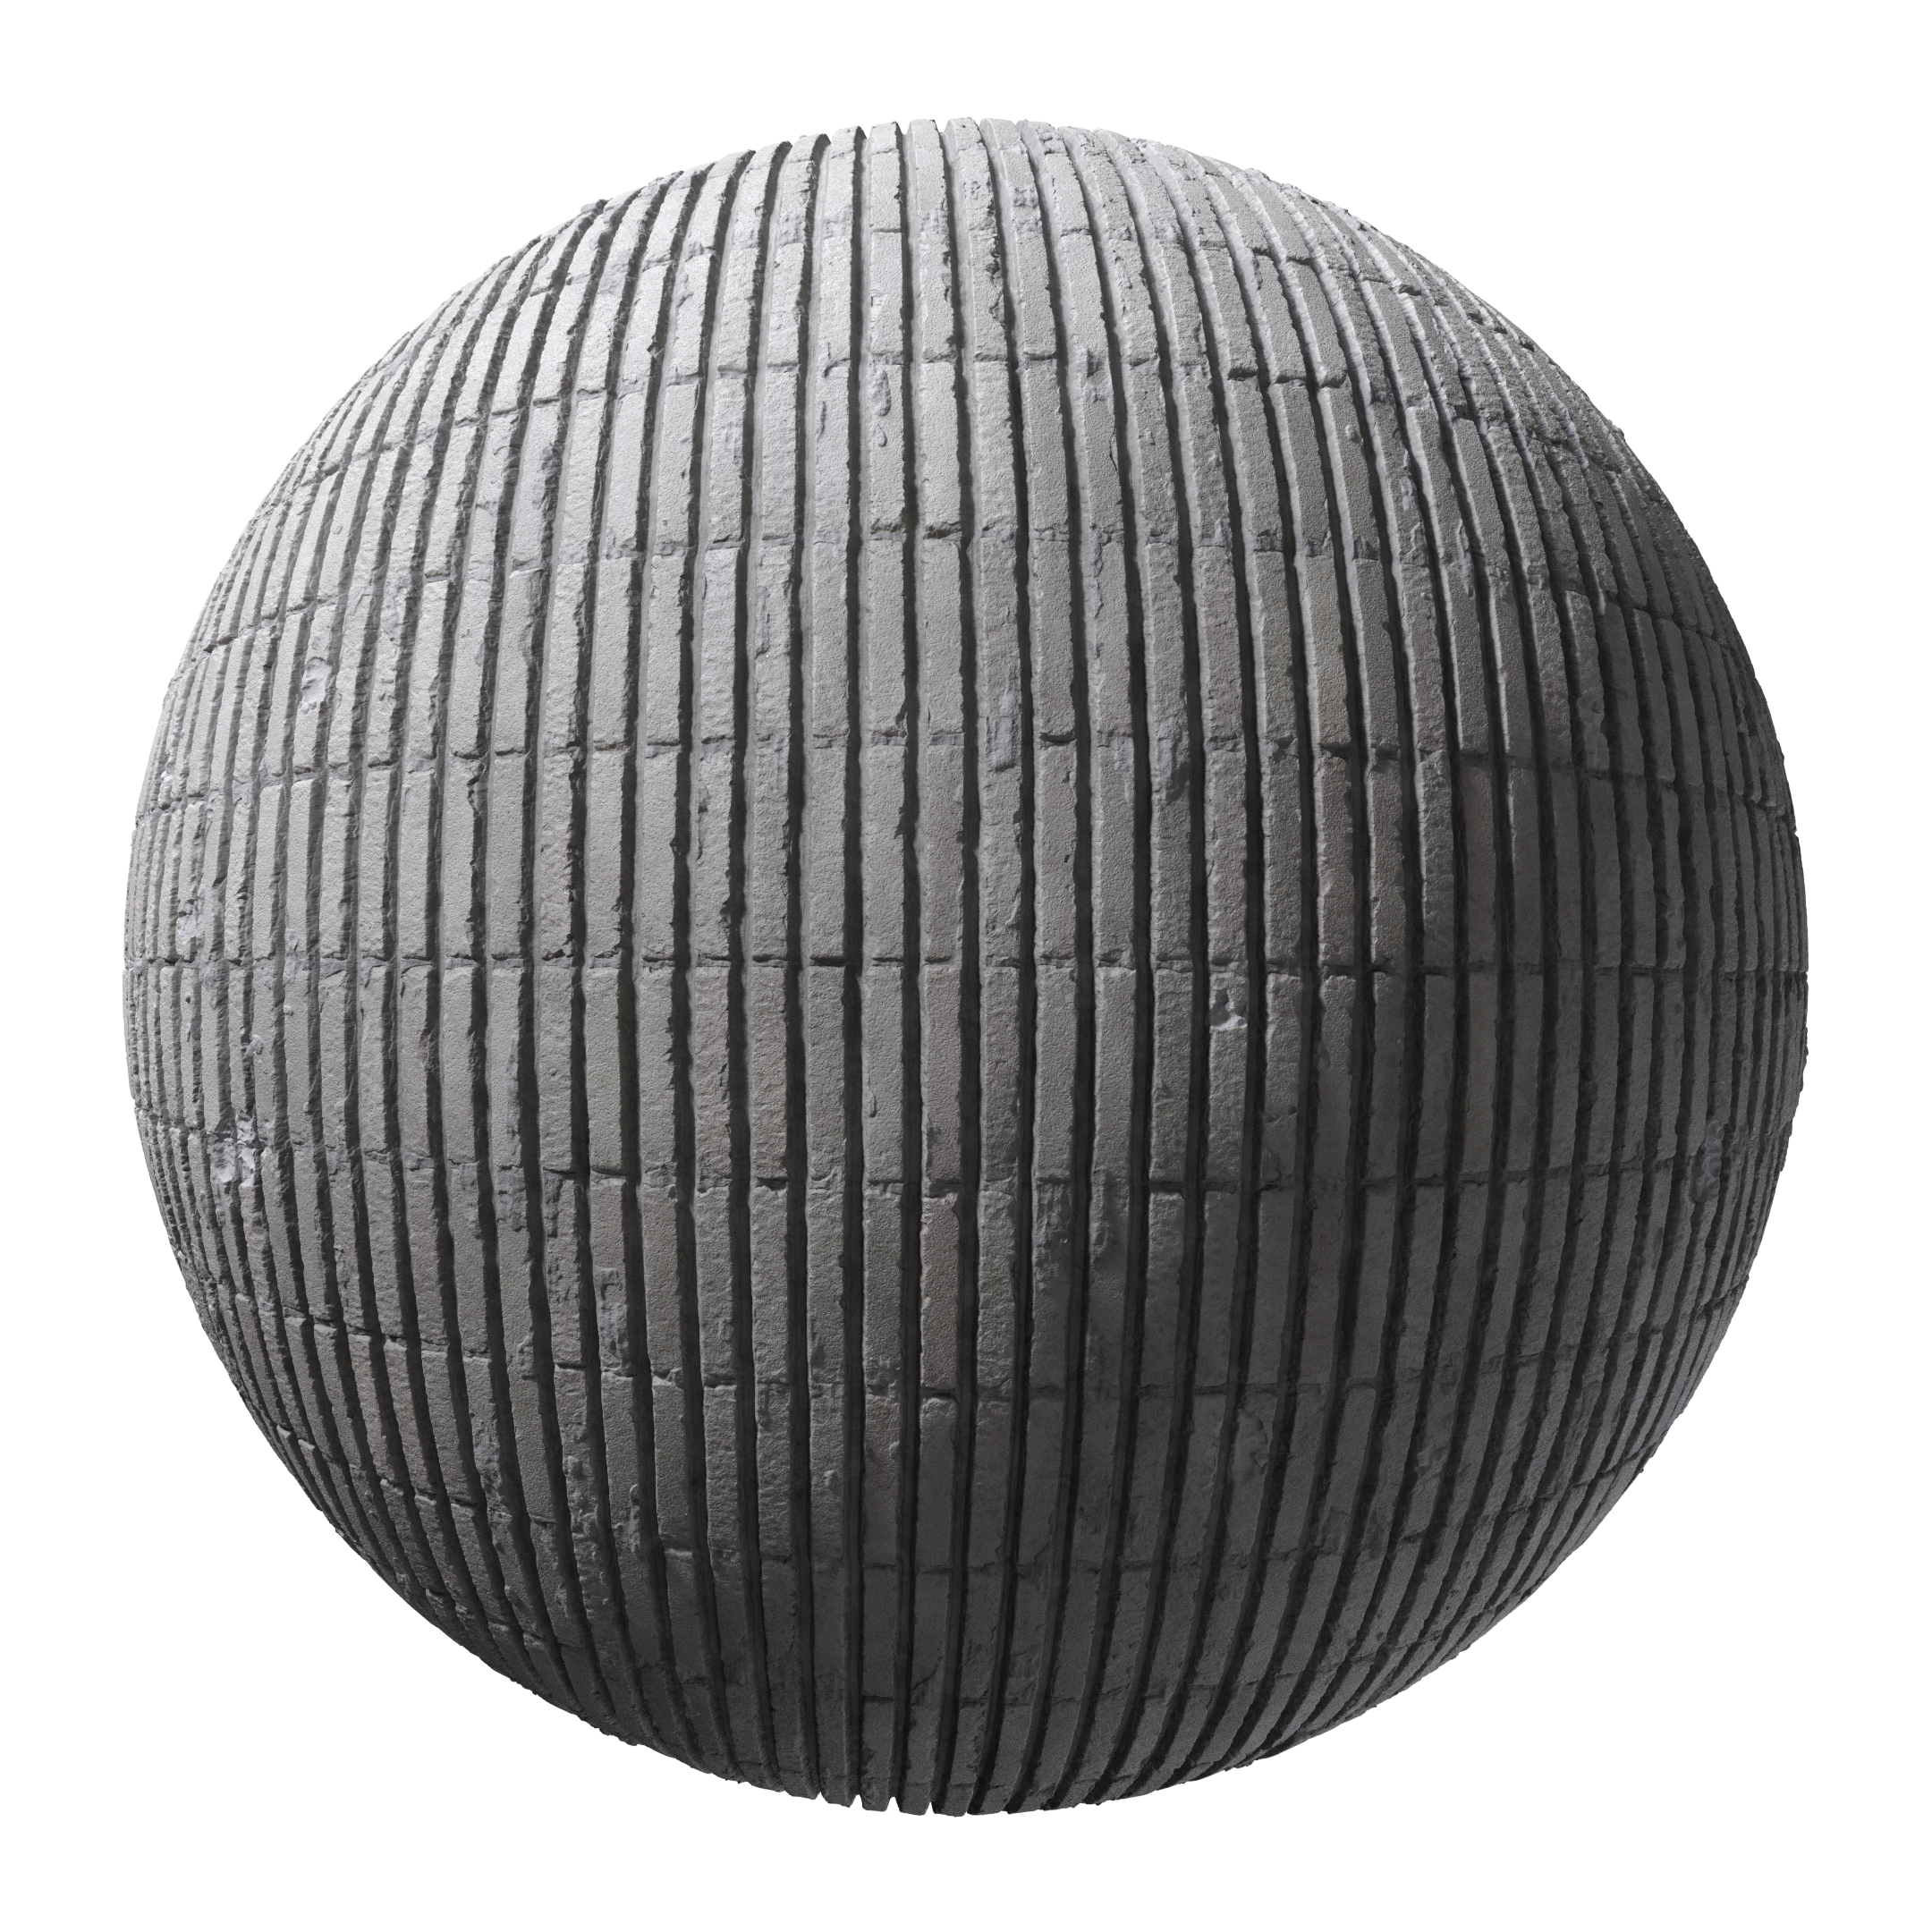 Tcom_Concrete_Grooved_thumb1.png